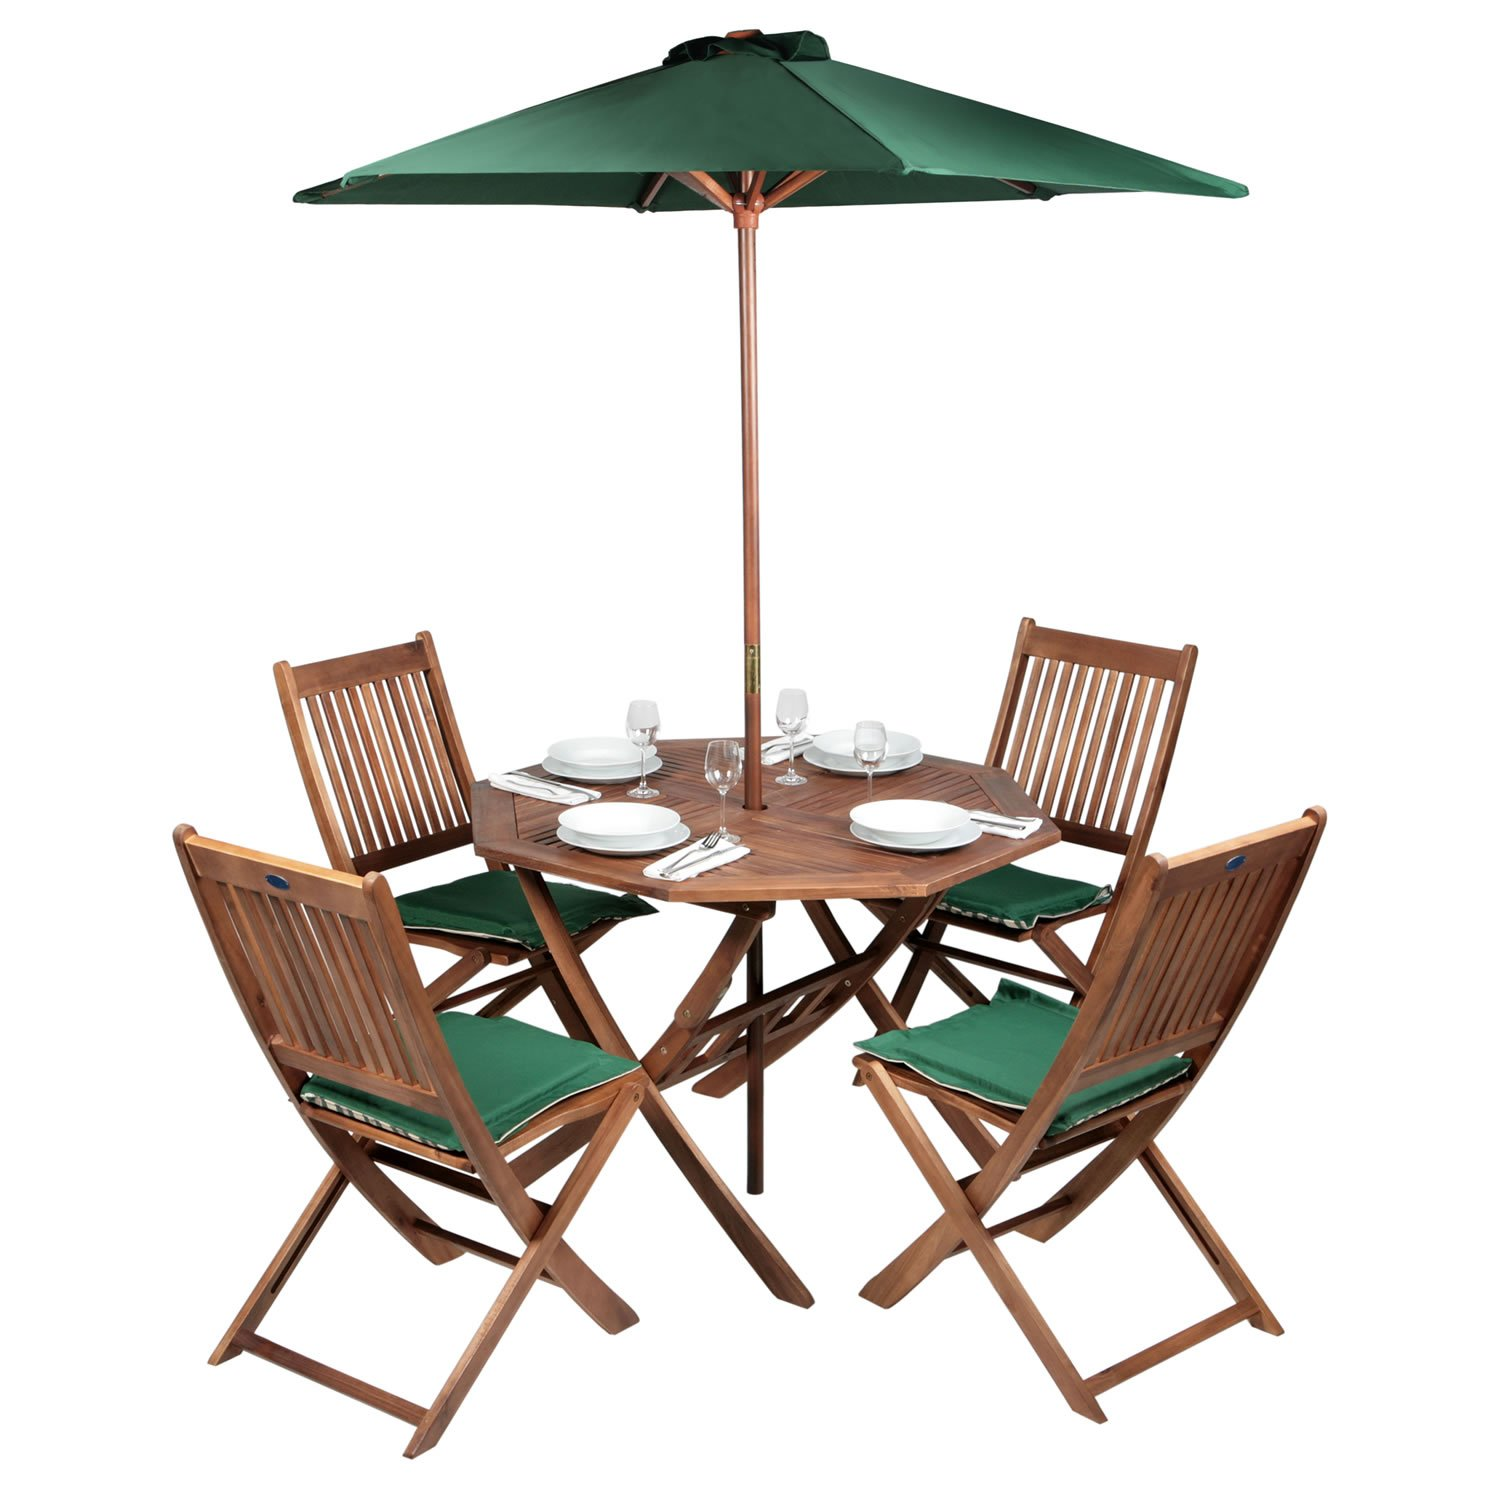 Patio 4 Seater Dining Set Acacia Hardwood Octagonal Folding